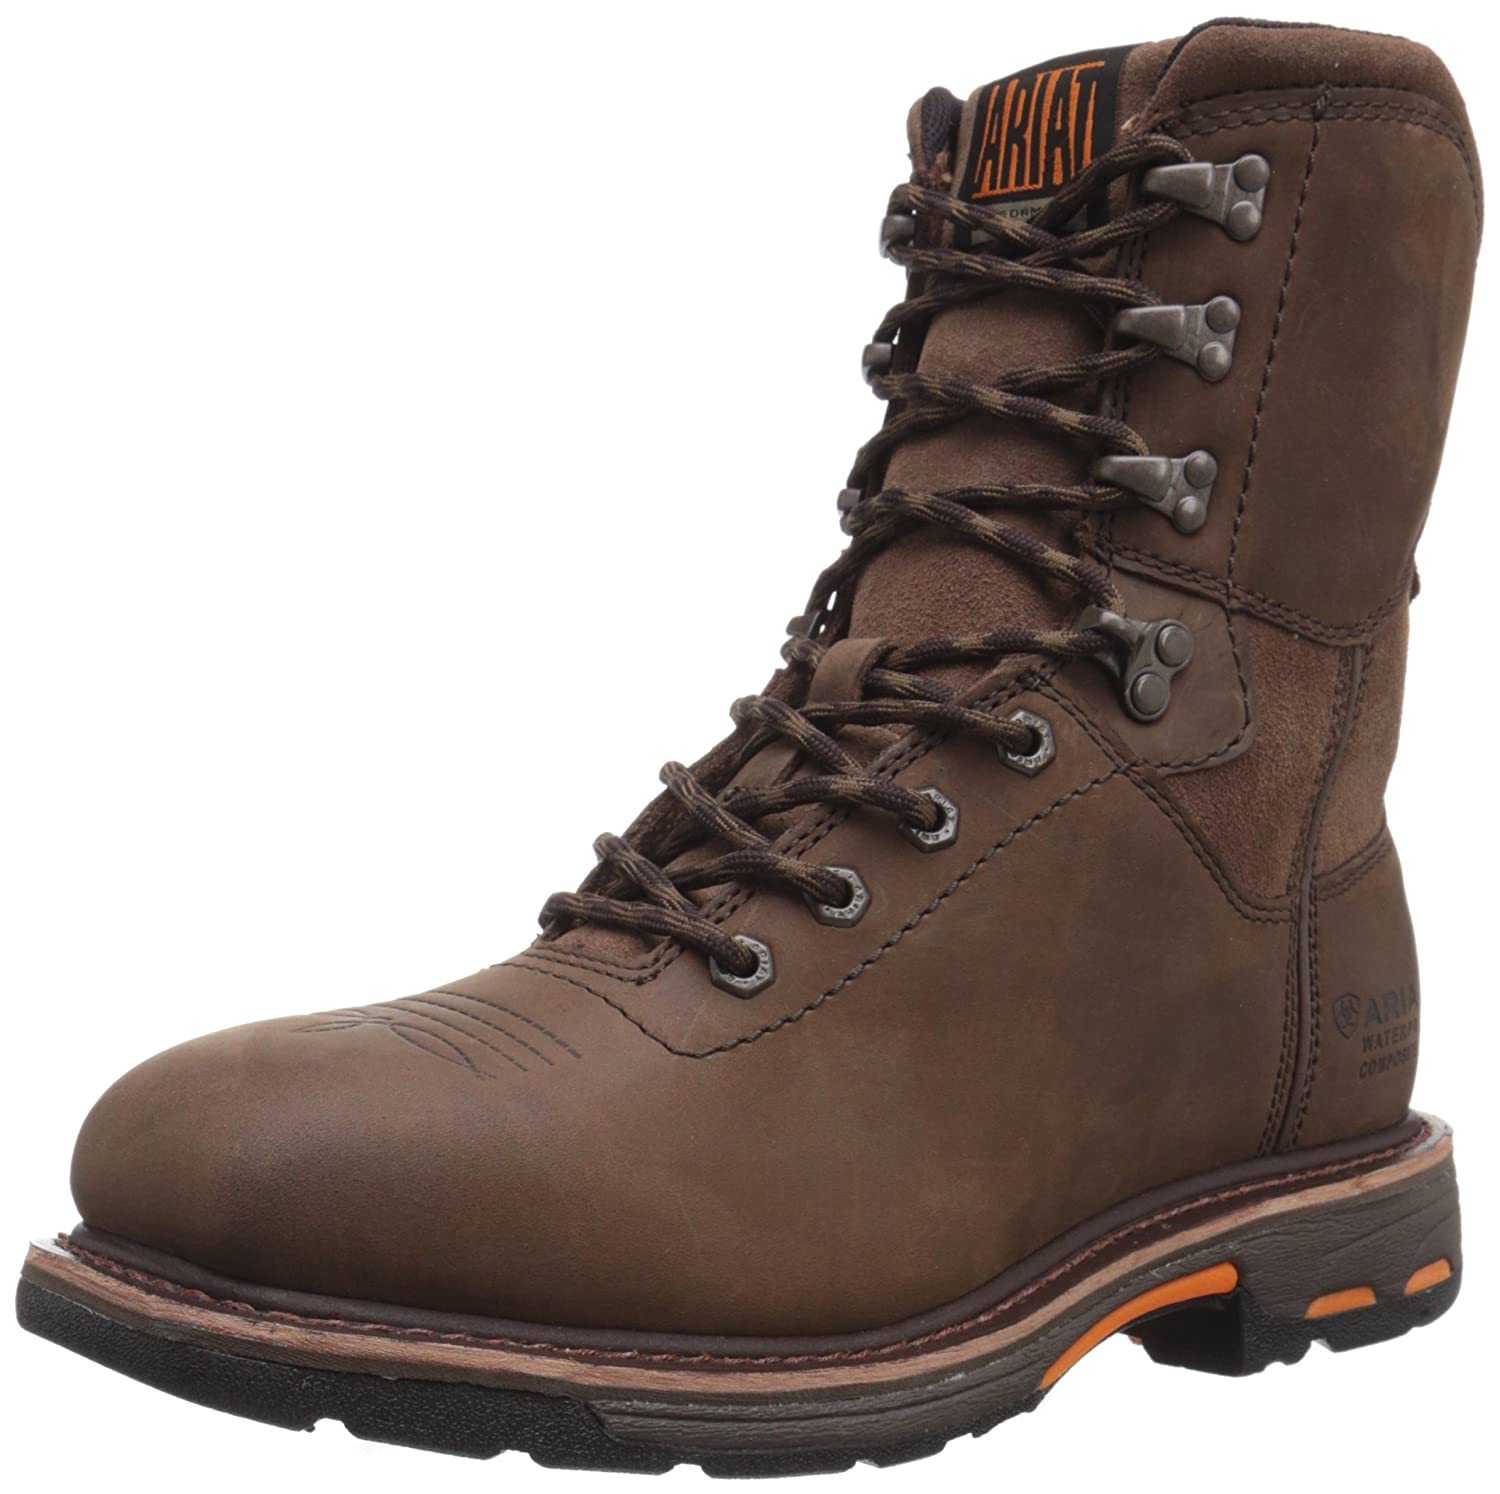 Ariat メンズ Oily Distressted Brown 11.5 2E US 11.5 2E USOily Distressted Brown B013TCMQOS